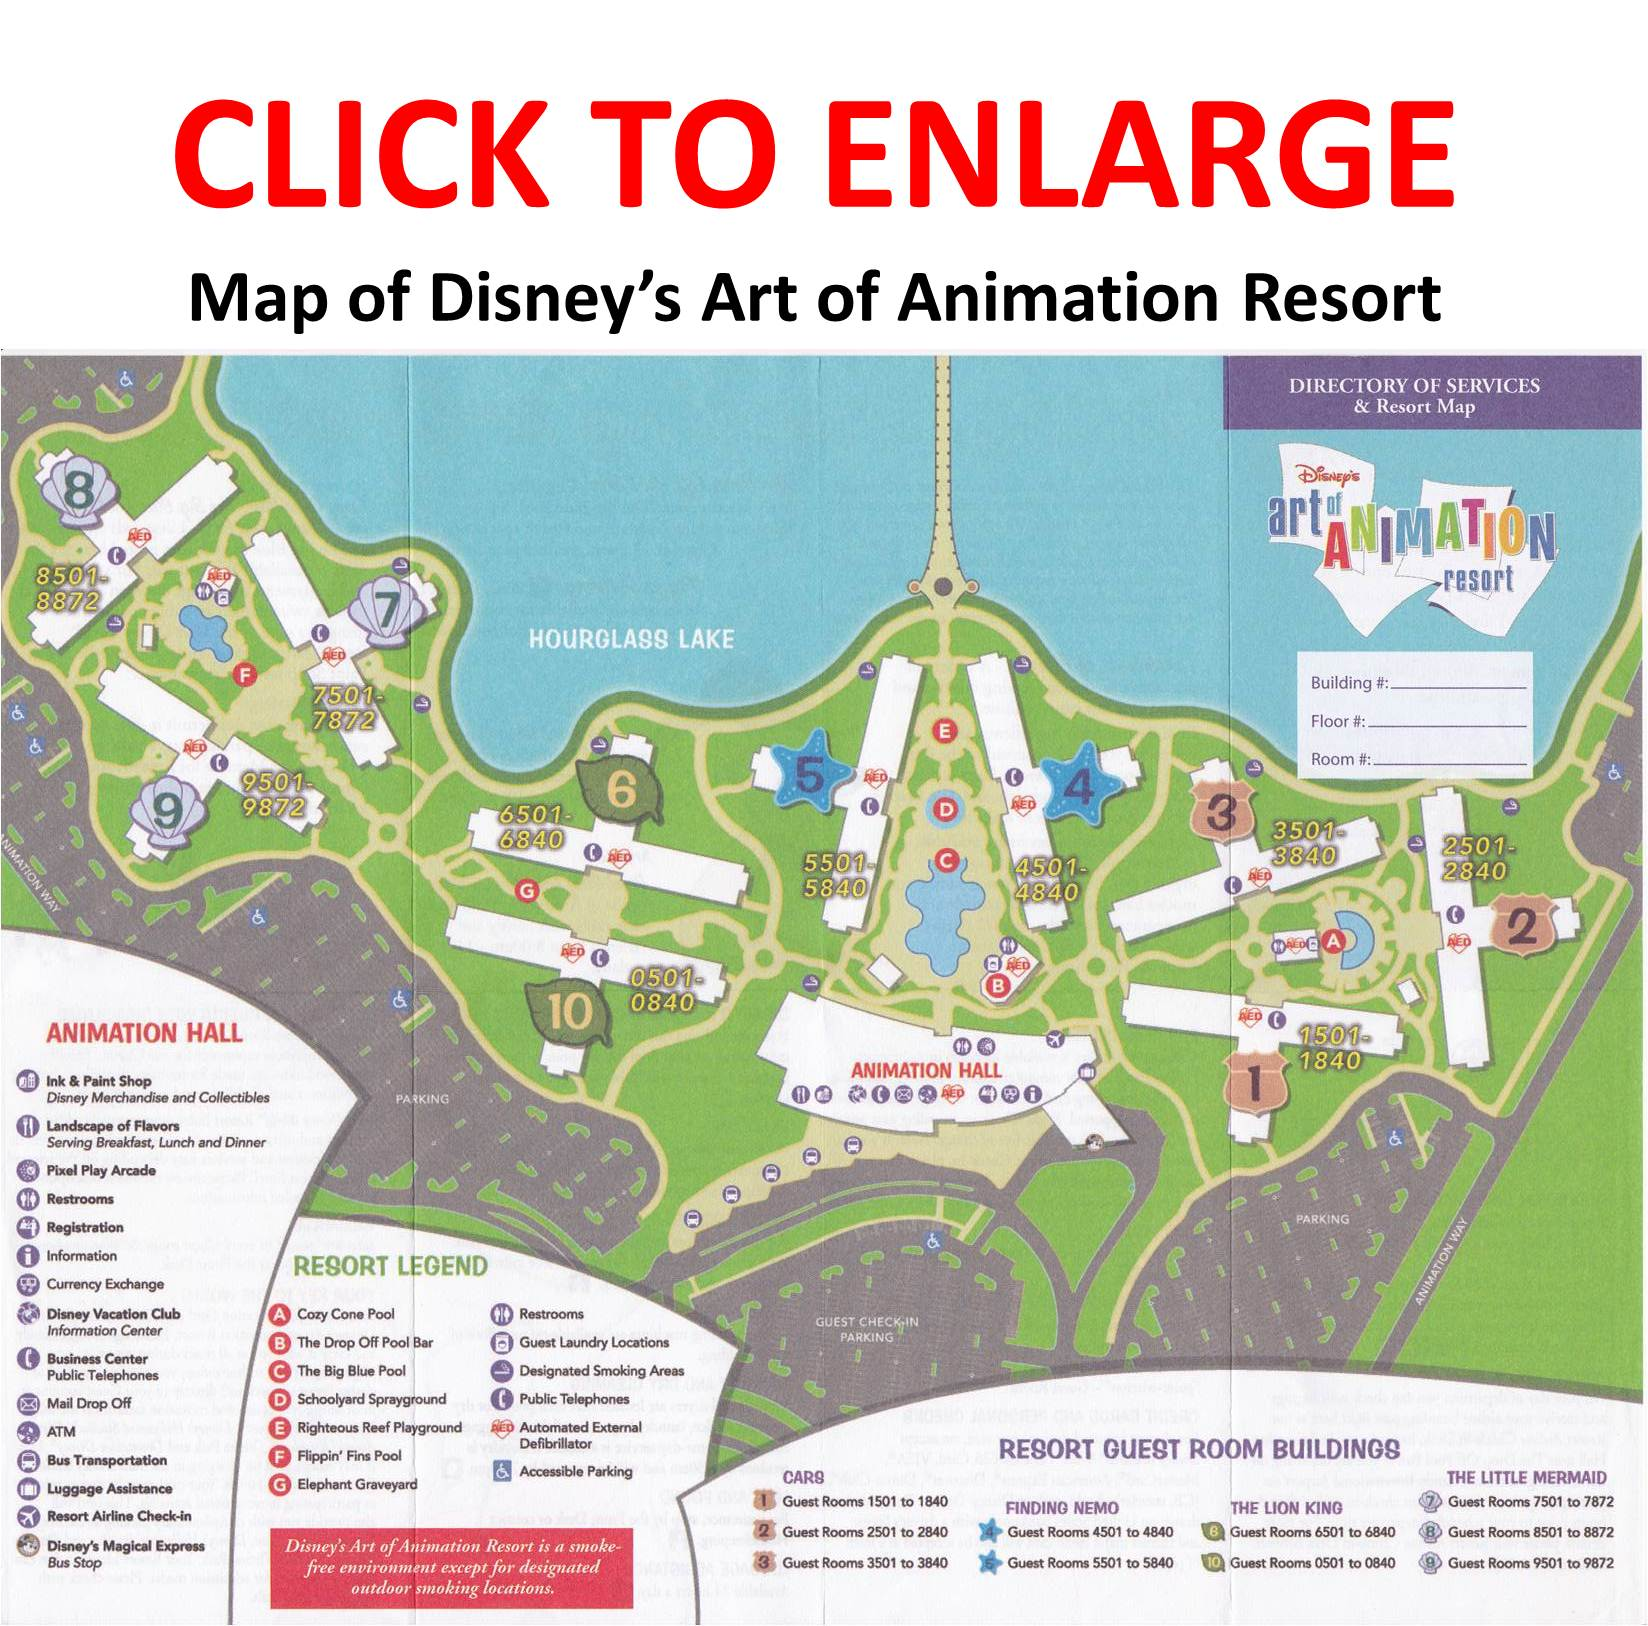 Map-of-Disneys-Art-of-Animation-Resort-v2